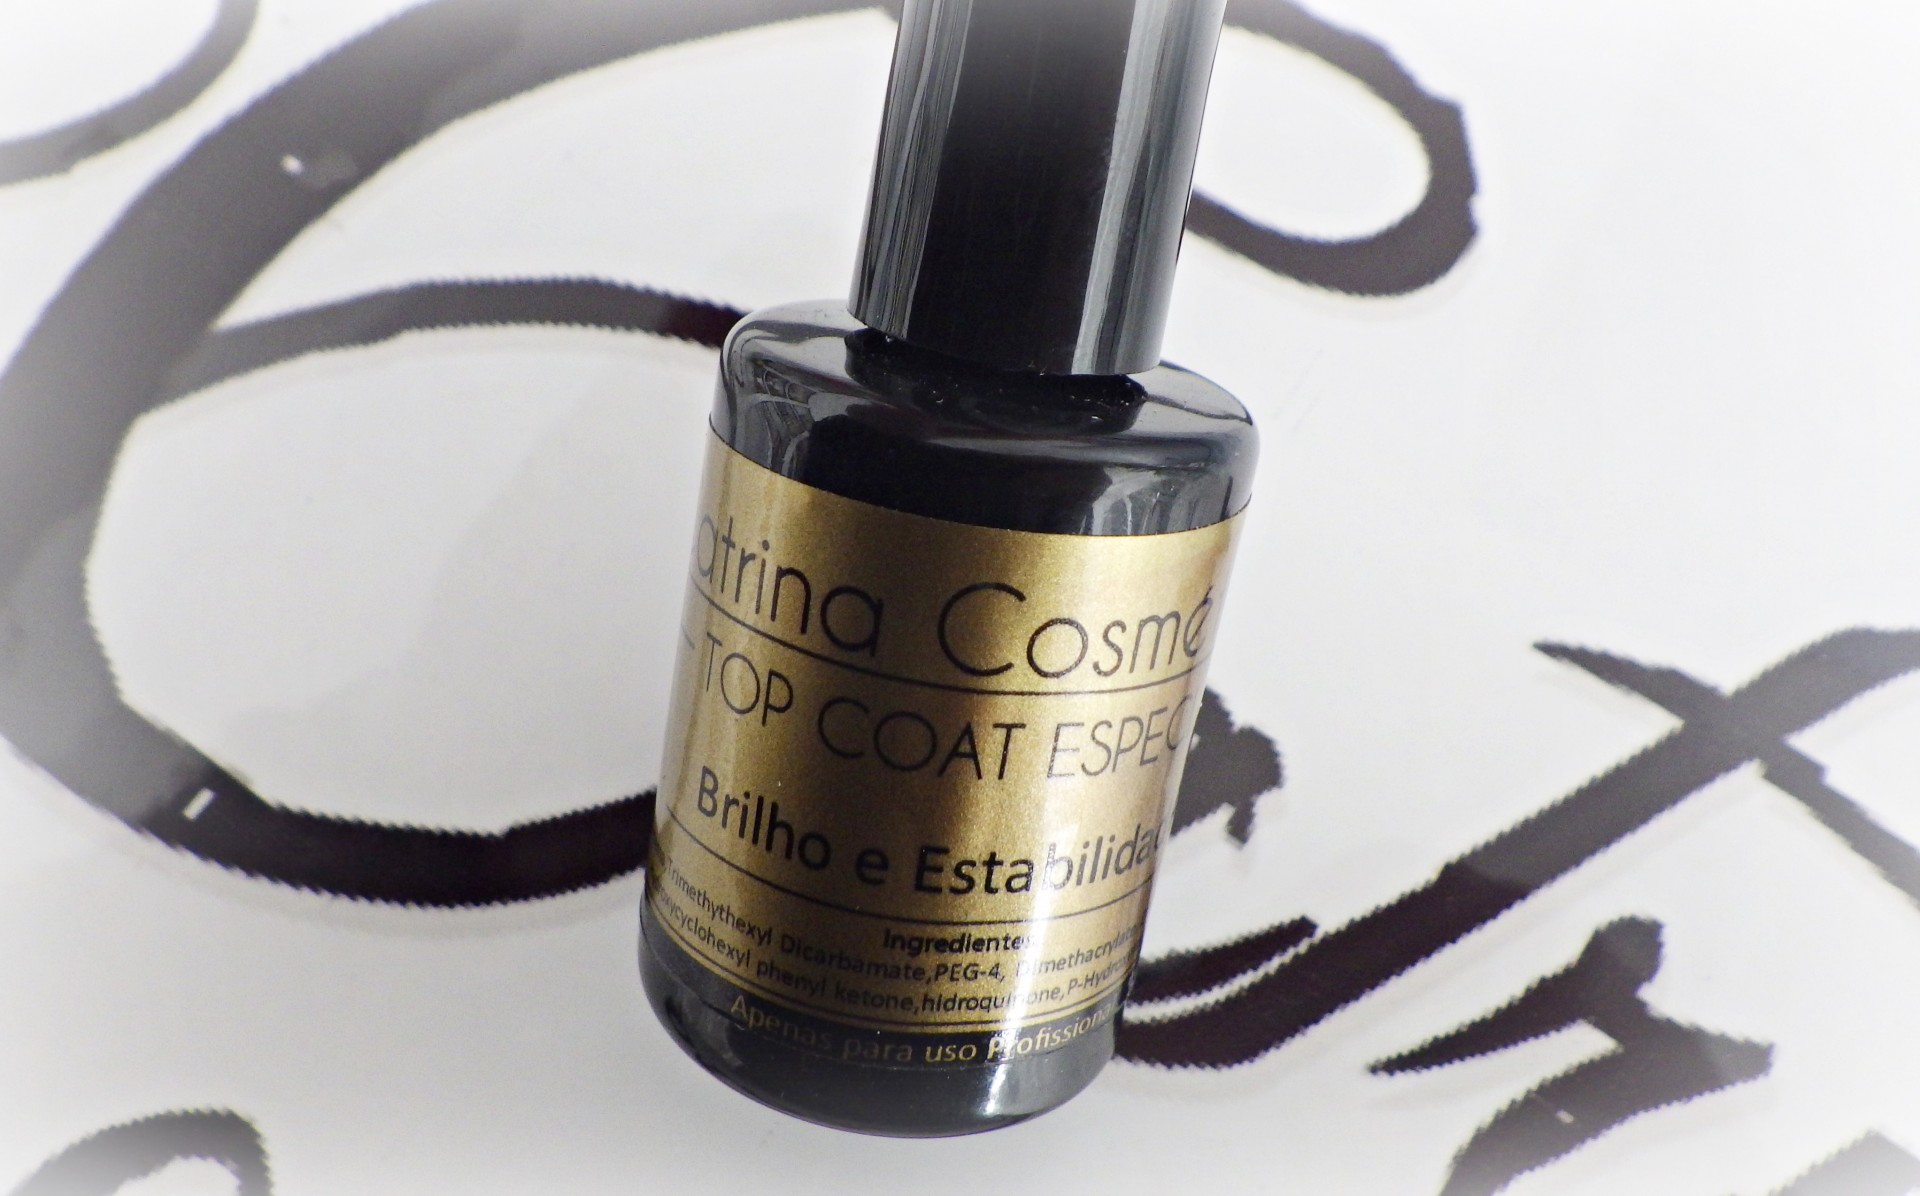 Top Coat Especial Catrina 15ml